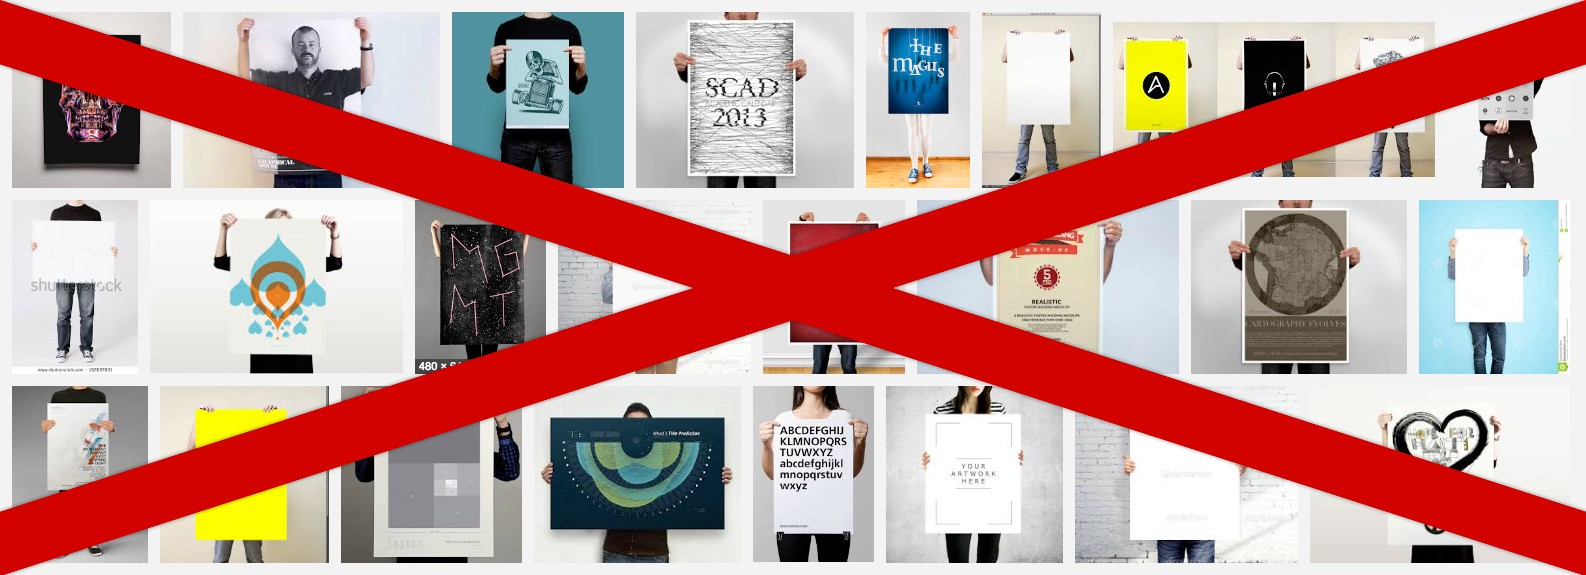 How to kick-start your design career in 10 steps from UIGarage